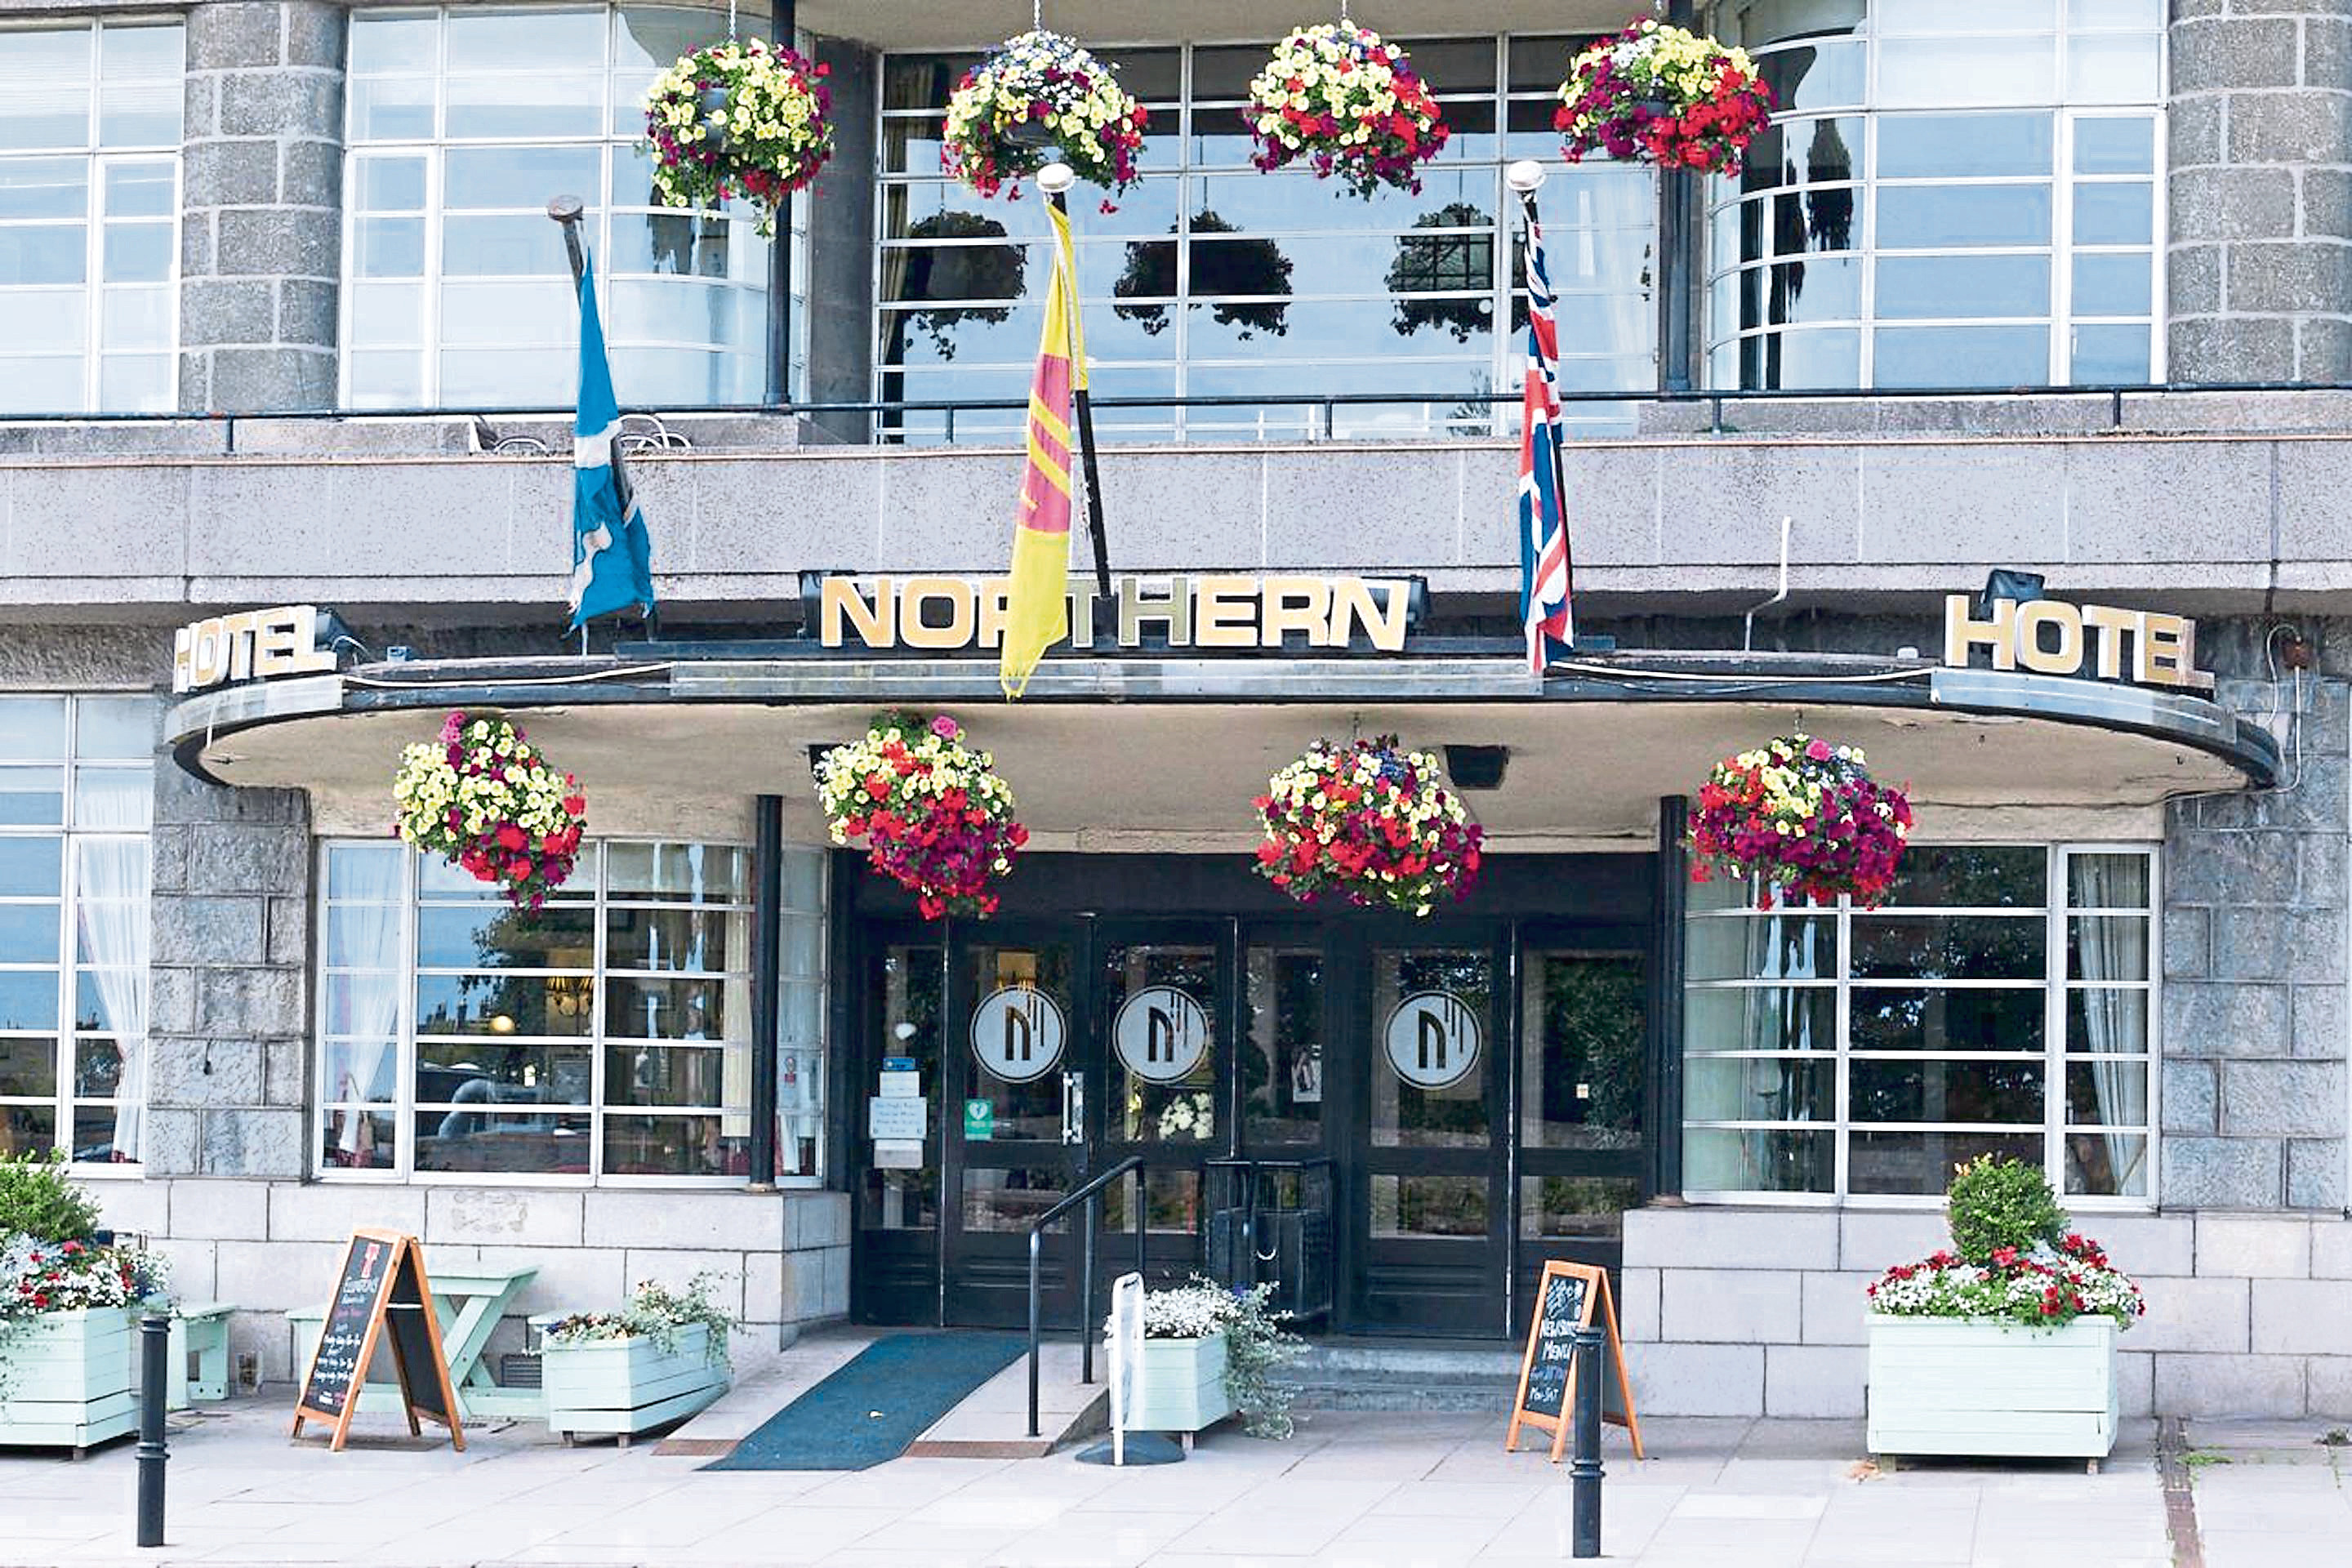 The Northern Hotel in Aberdeen. Submitted.